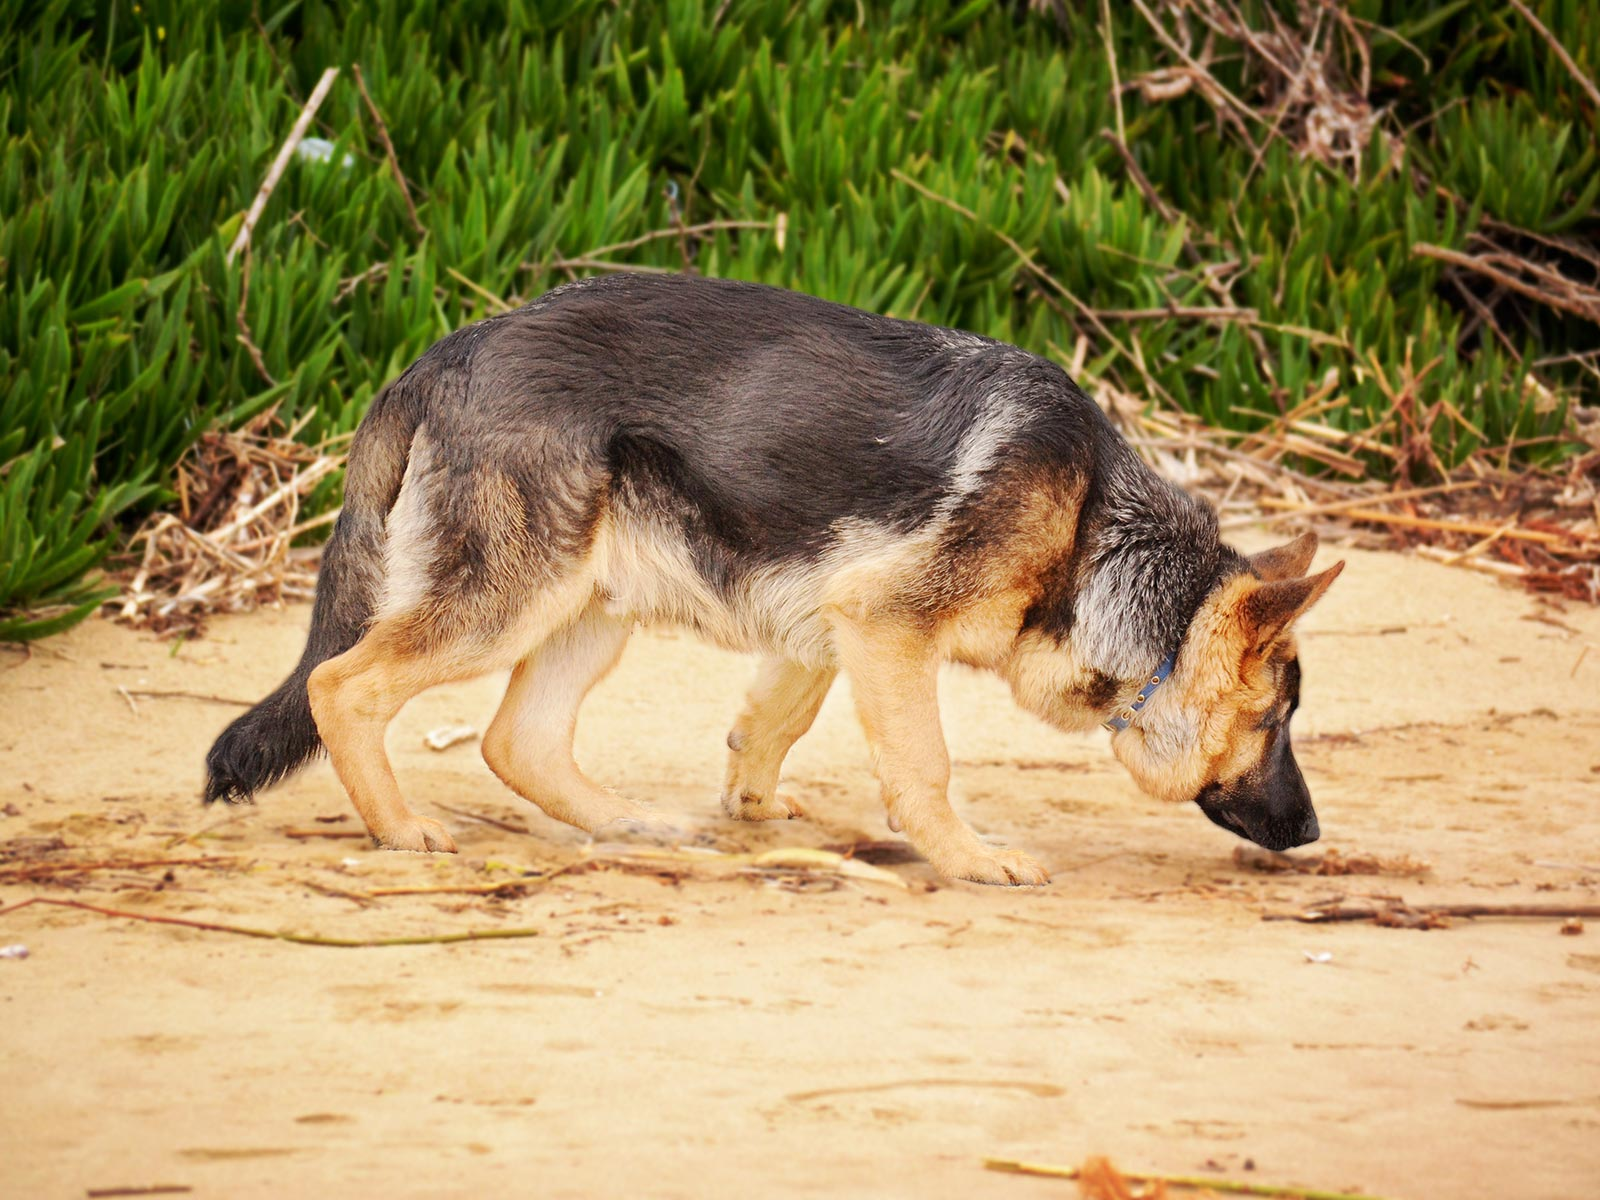 German Shepherd sniffing floor on the beach, possible a police sniffer dog